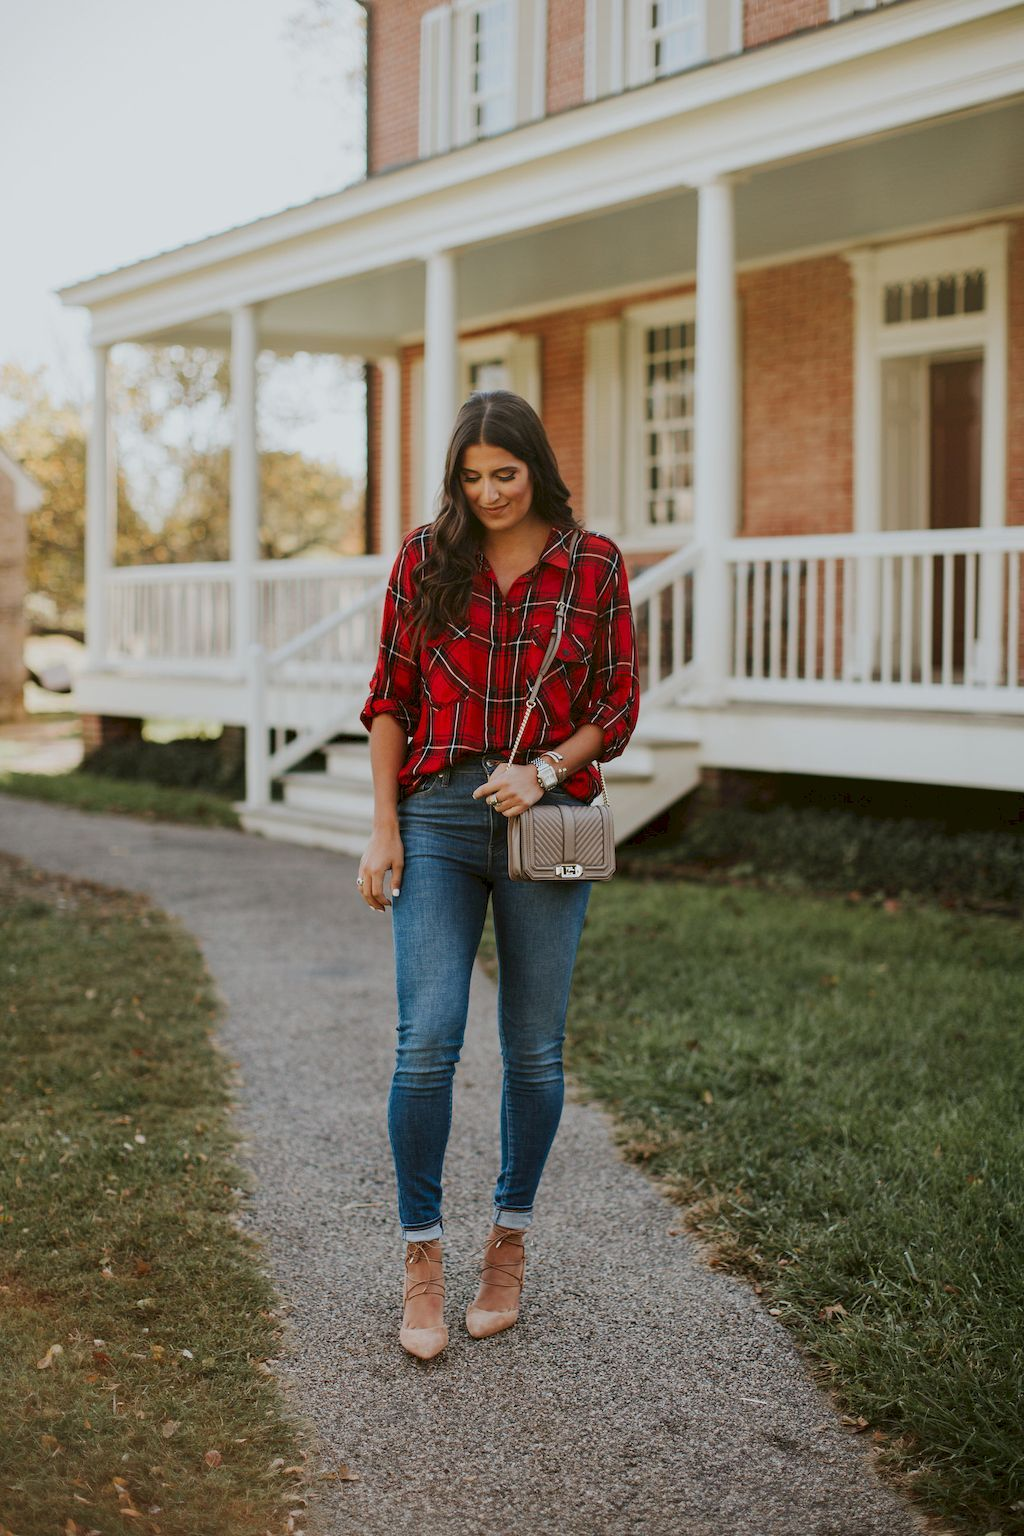 Flannel shirt ideas   Best Daily Outfit to Wear Flannel Shirt Ideas for Woman  Flannel